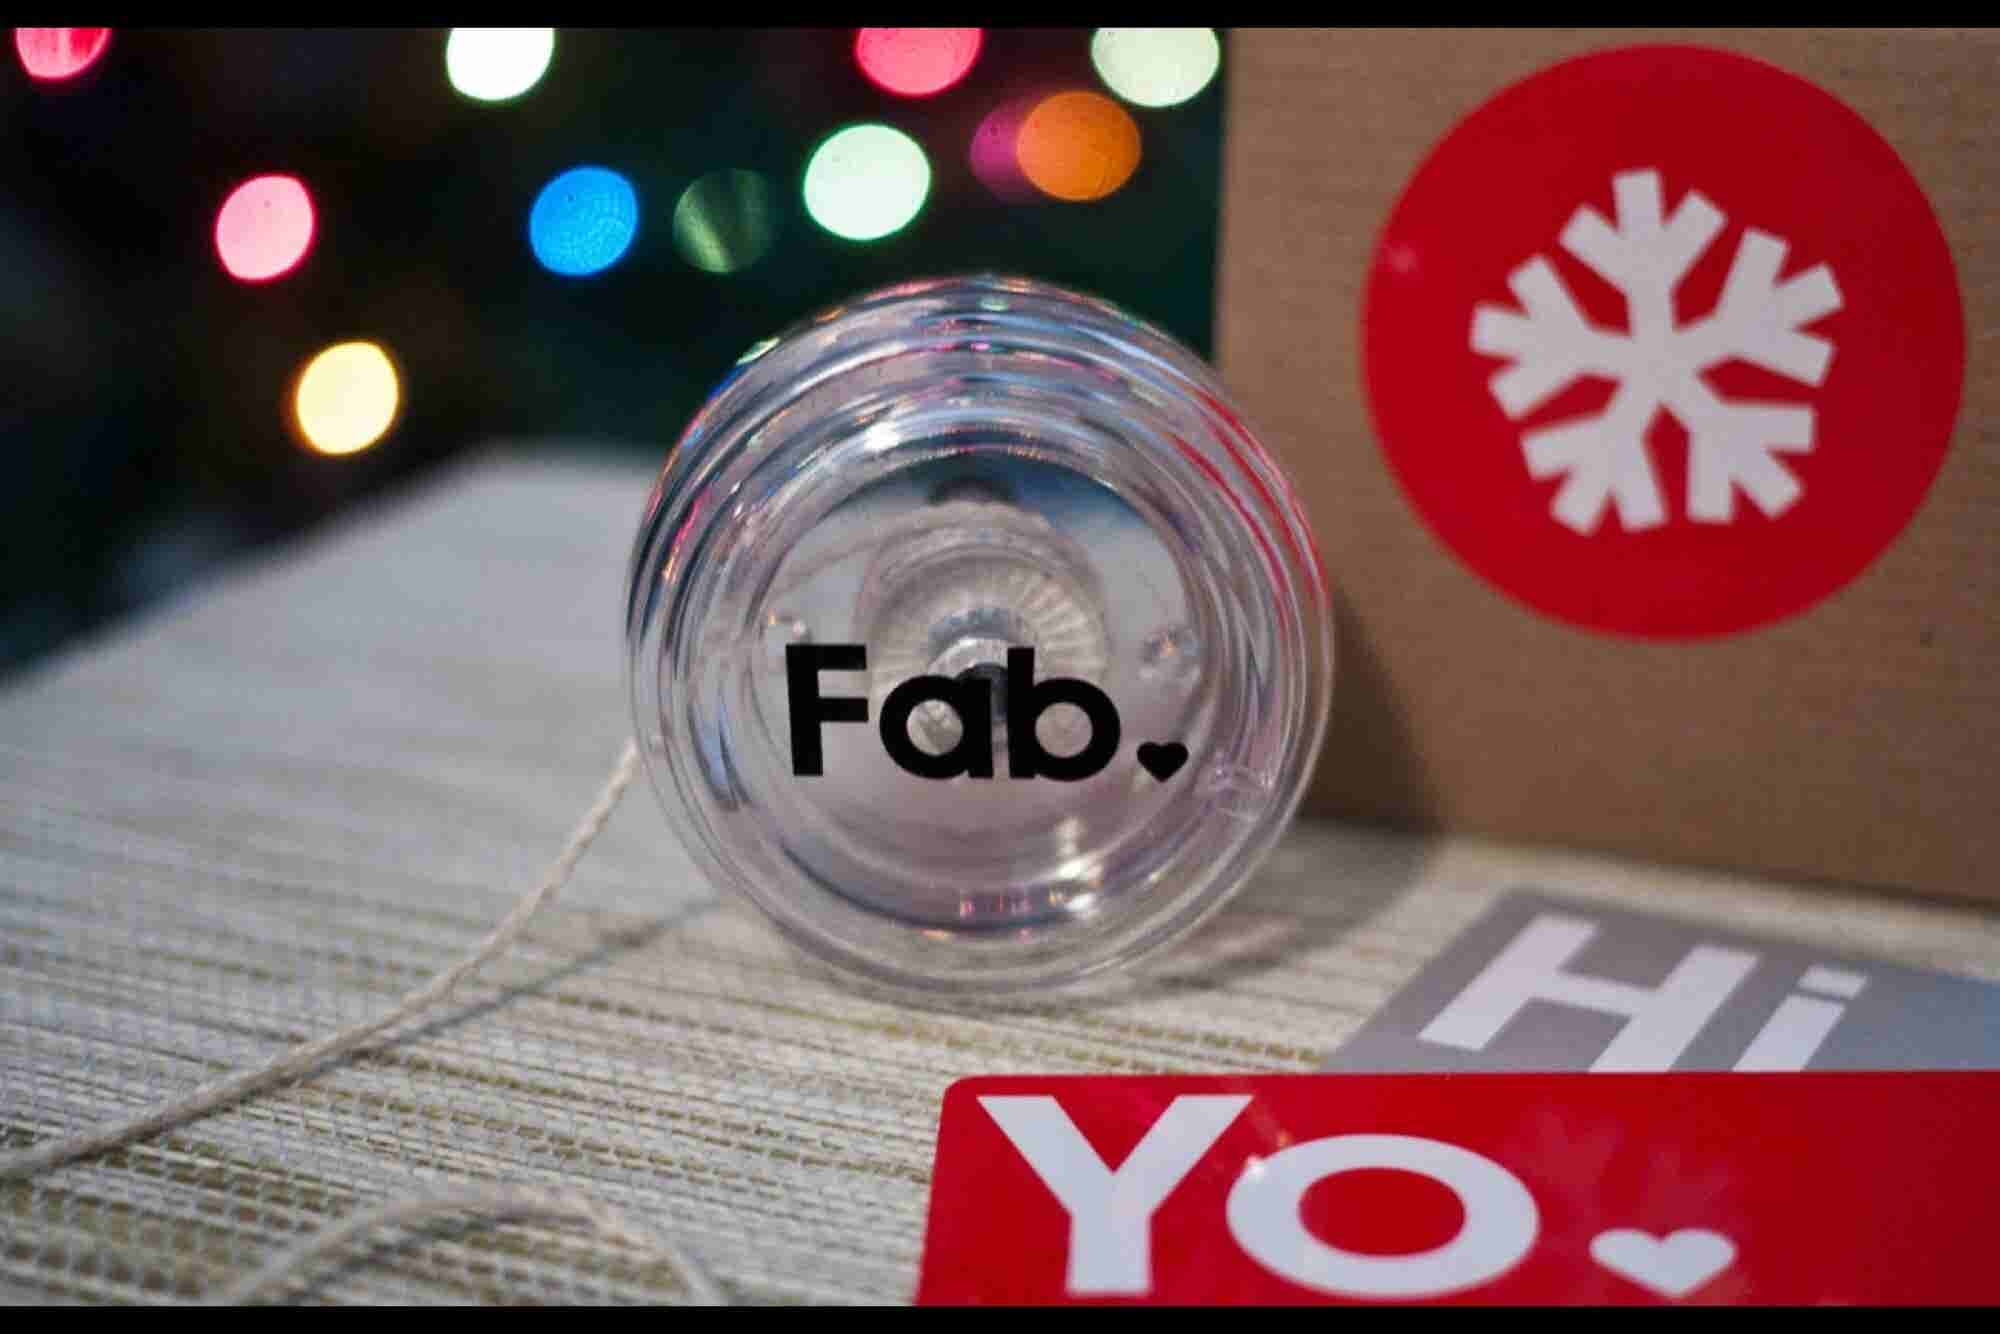 Fab.com's Massive Fall: Your Weekly News Roundup